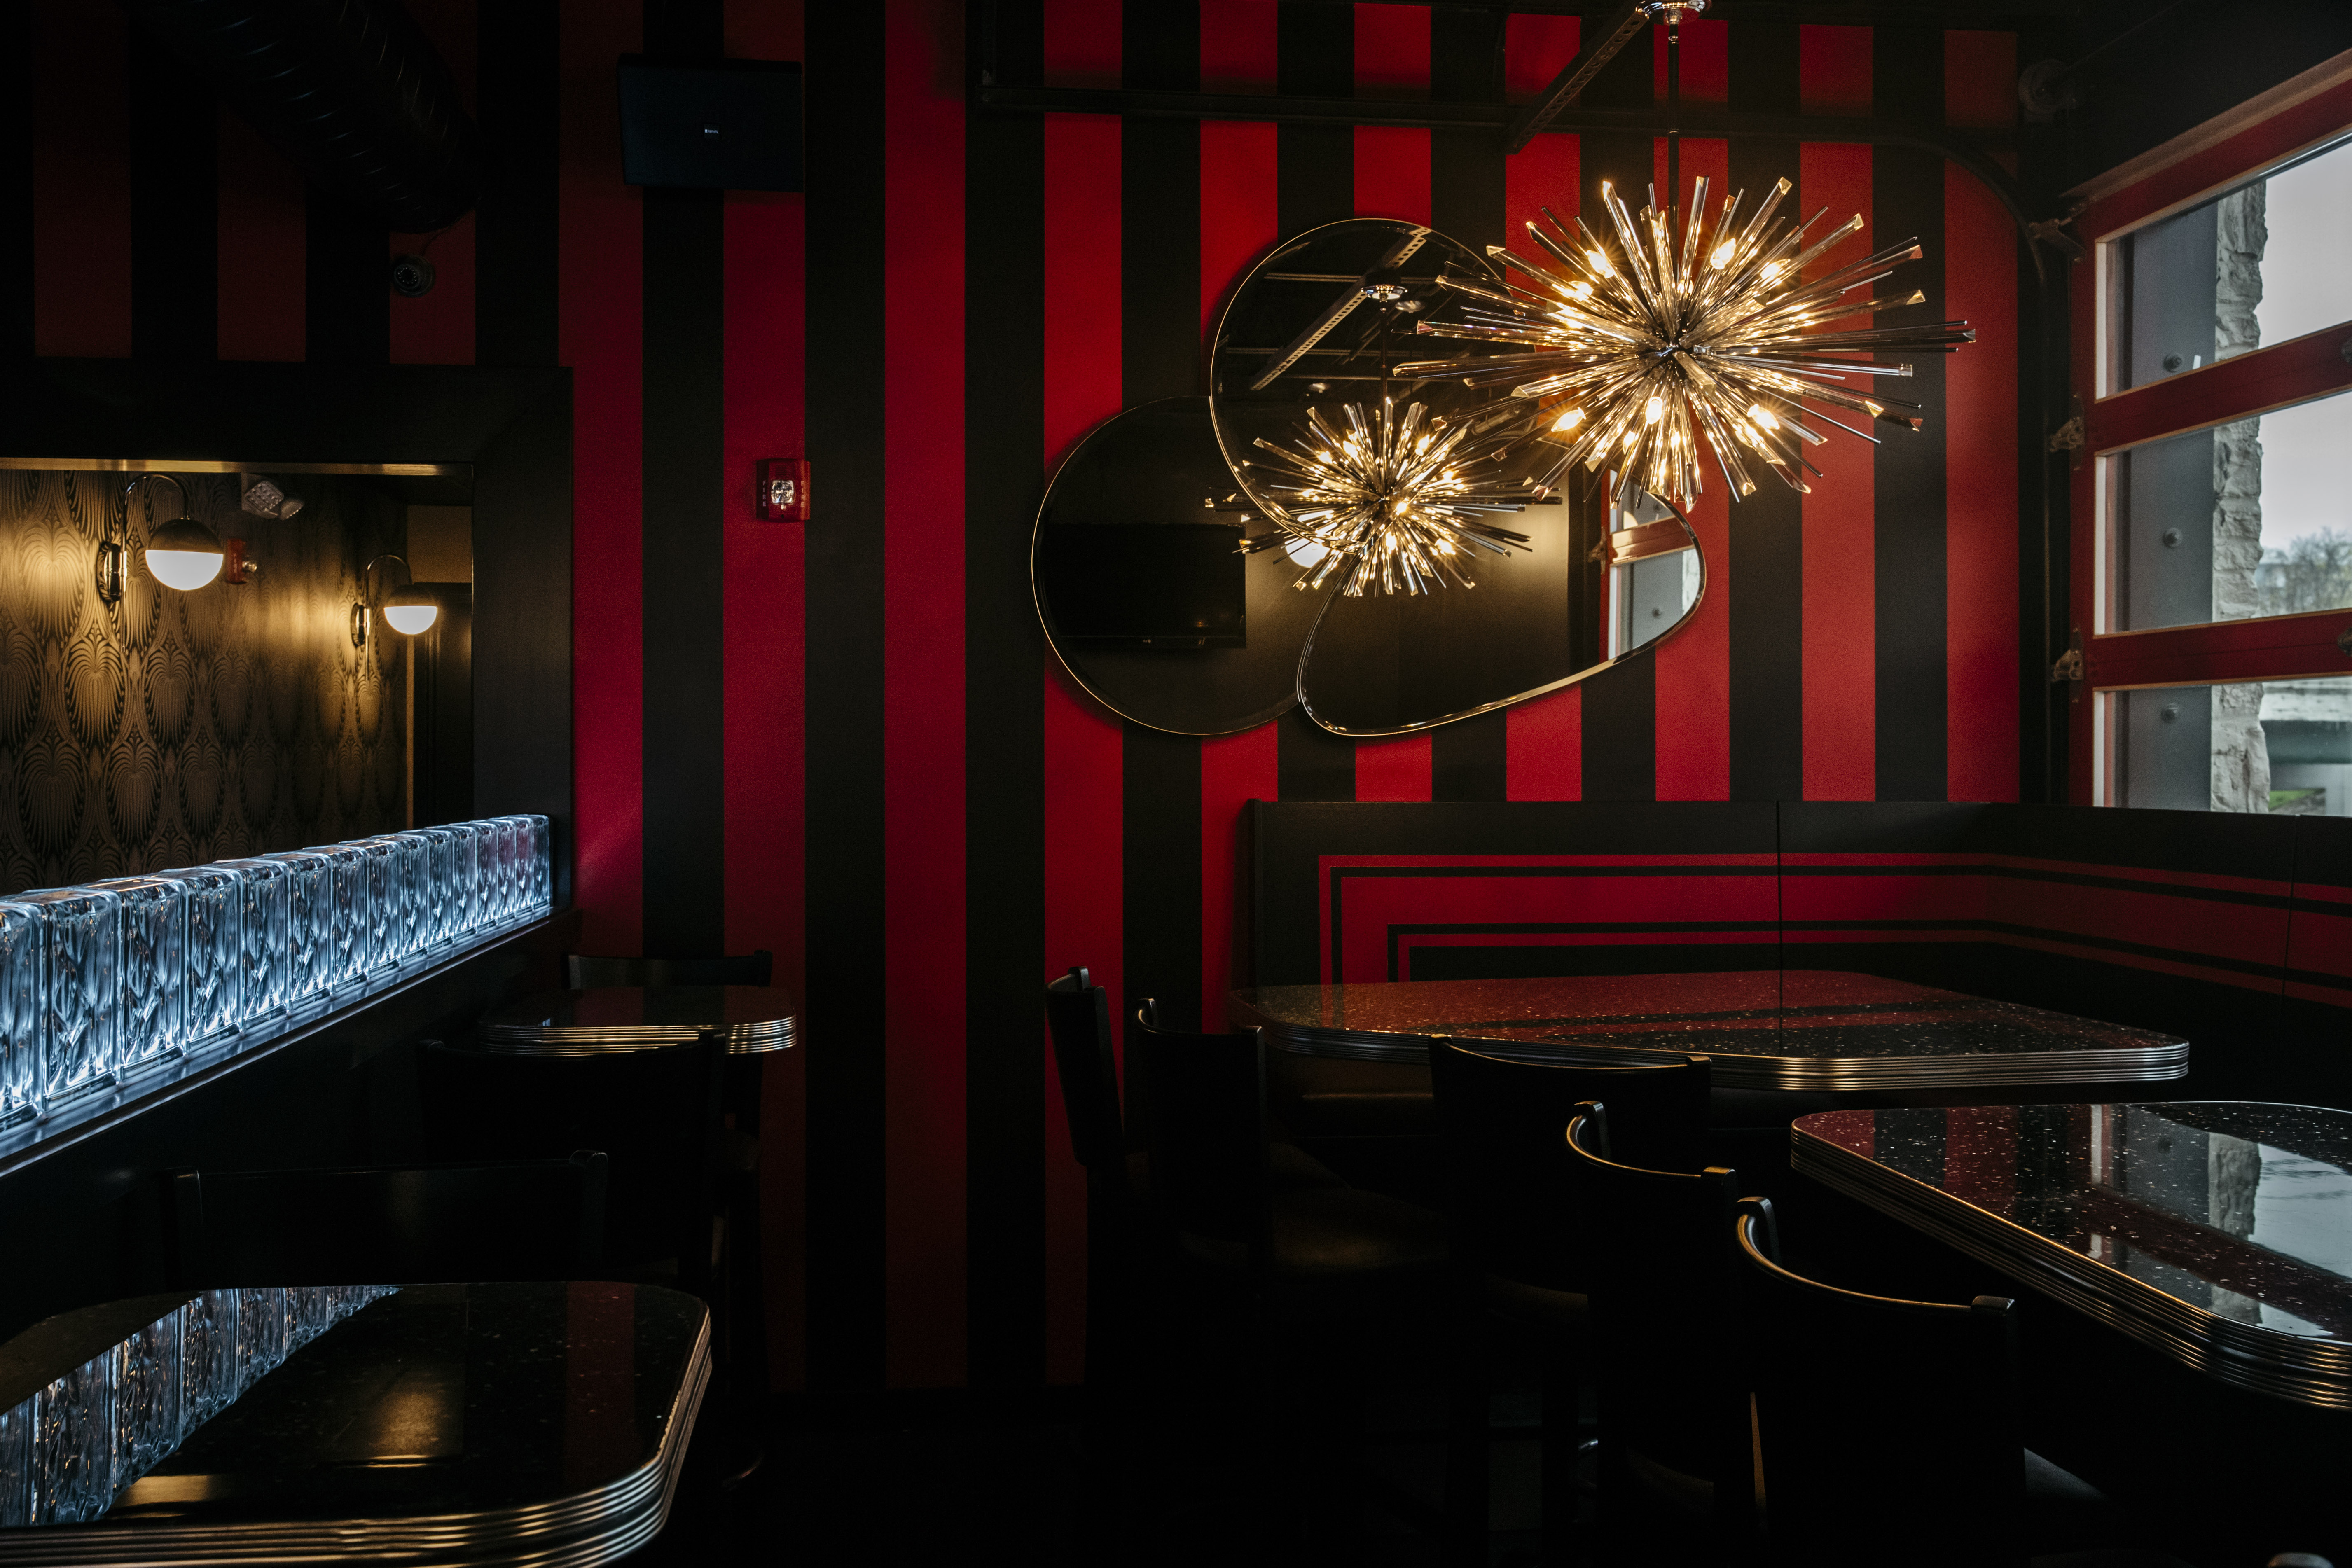 A Look Inside Fat Kat Slim's, Eighth Avenue's New 1950s-Style Diner